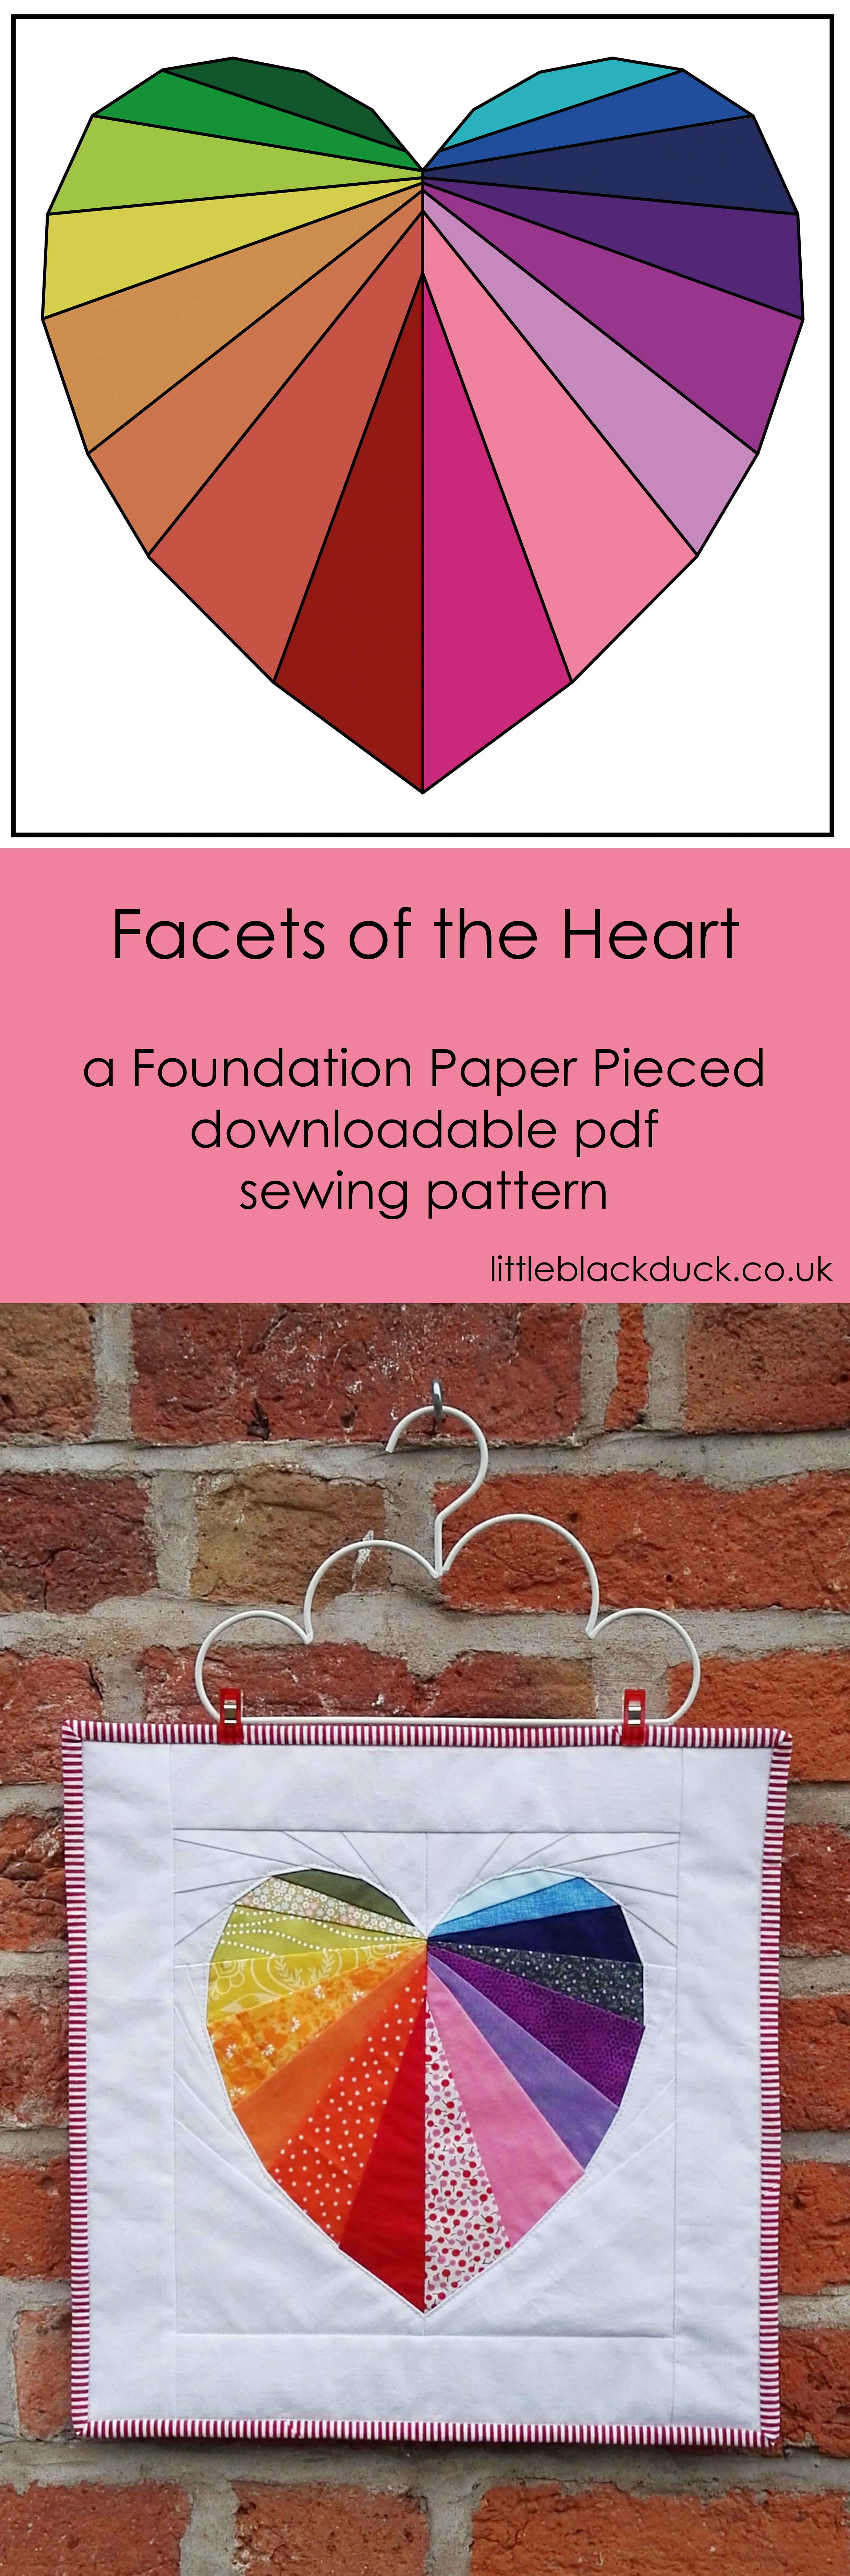 Facets of the Heart FPP pattern